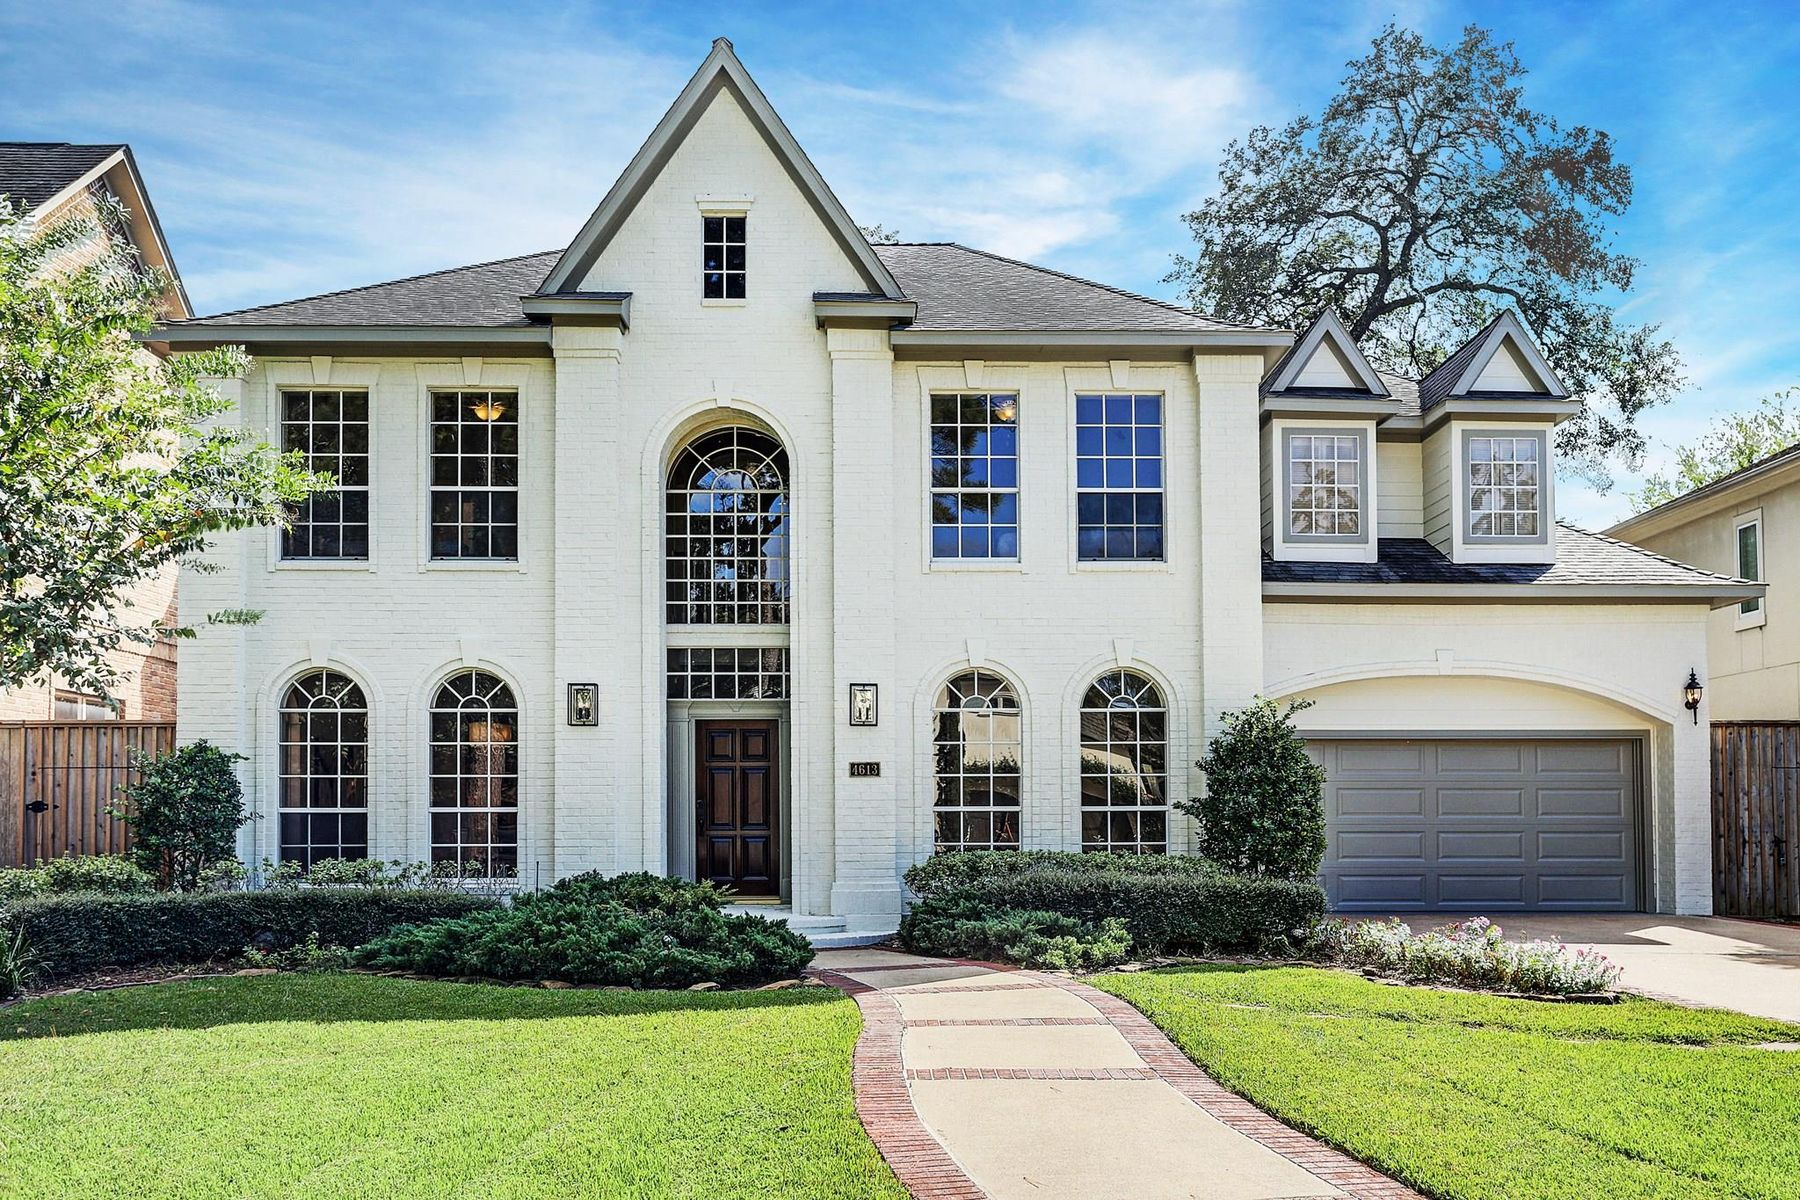 Single Family Homes for Sale at 4613 Cedar Oaks Lane Bellaire, Texas 77401 United States